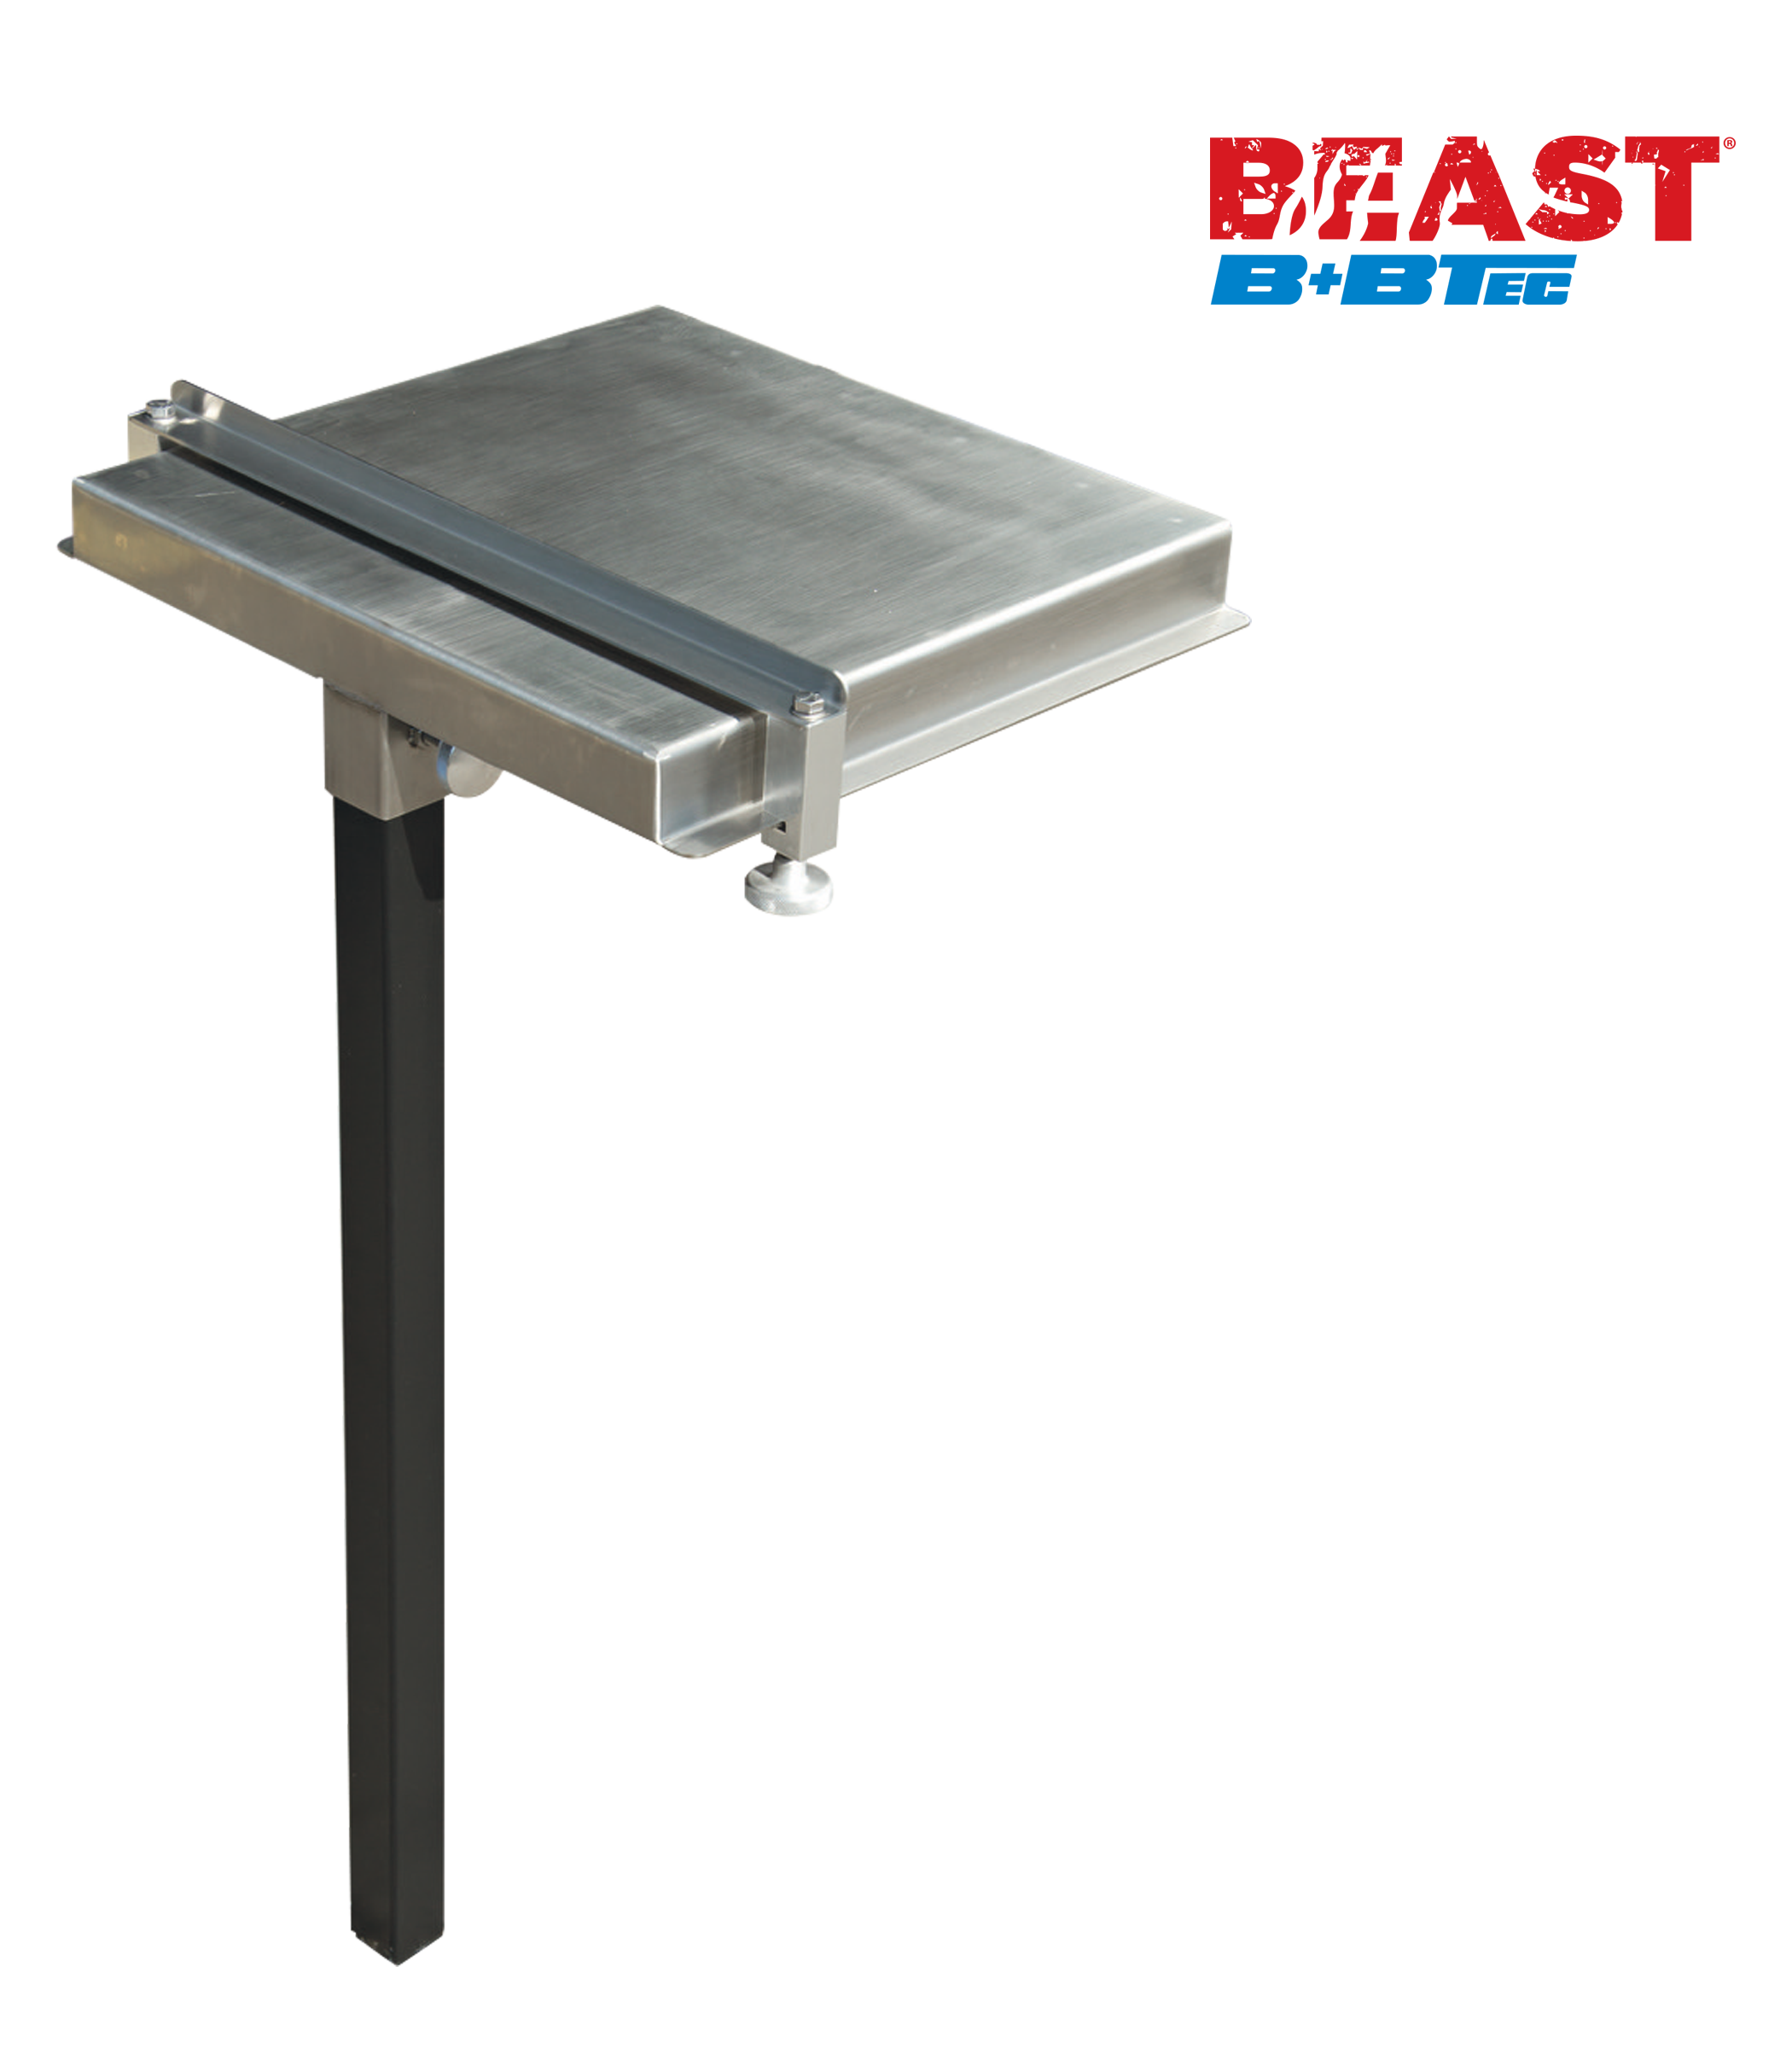 Beast B Btec Side Table With Squaring Arm Tile Saw